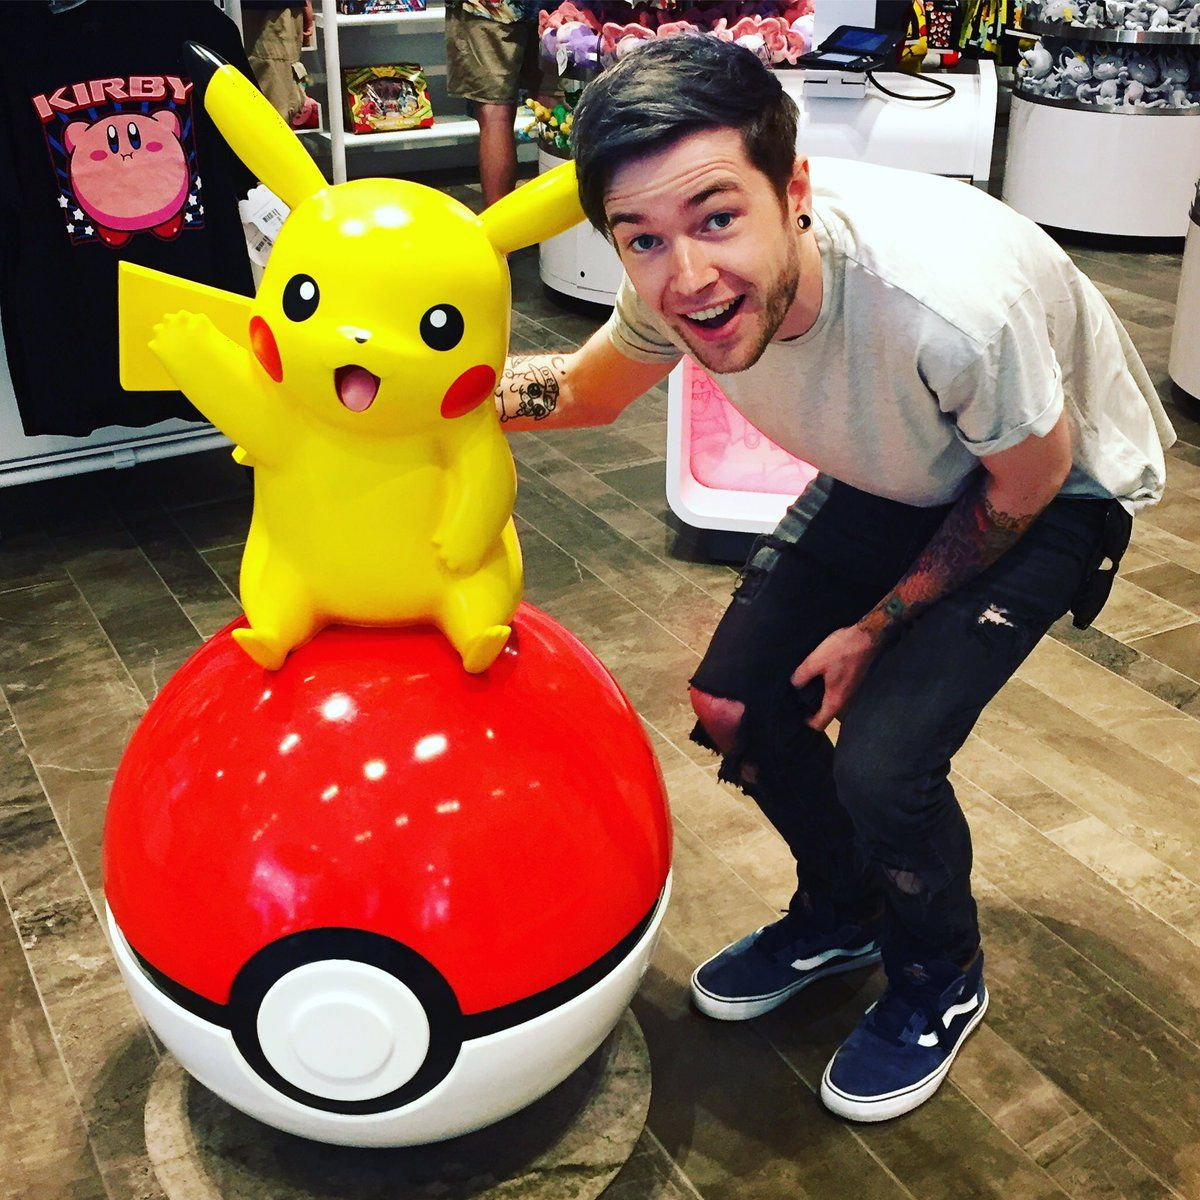 Dantdm found a pikachu dantdm pinterest tdm - Diamond minecart theme song ...